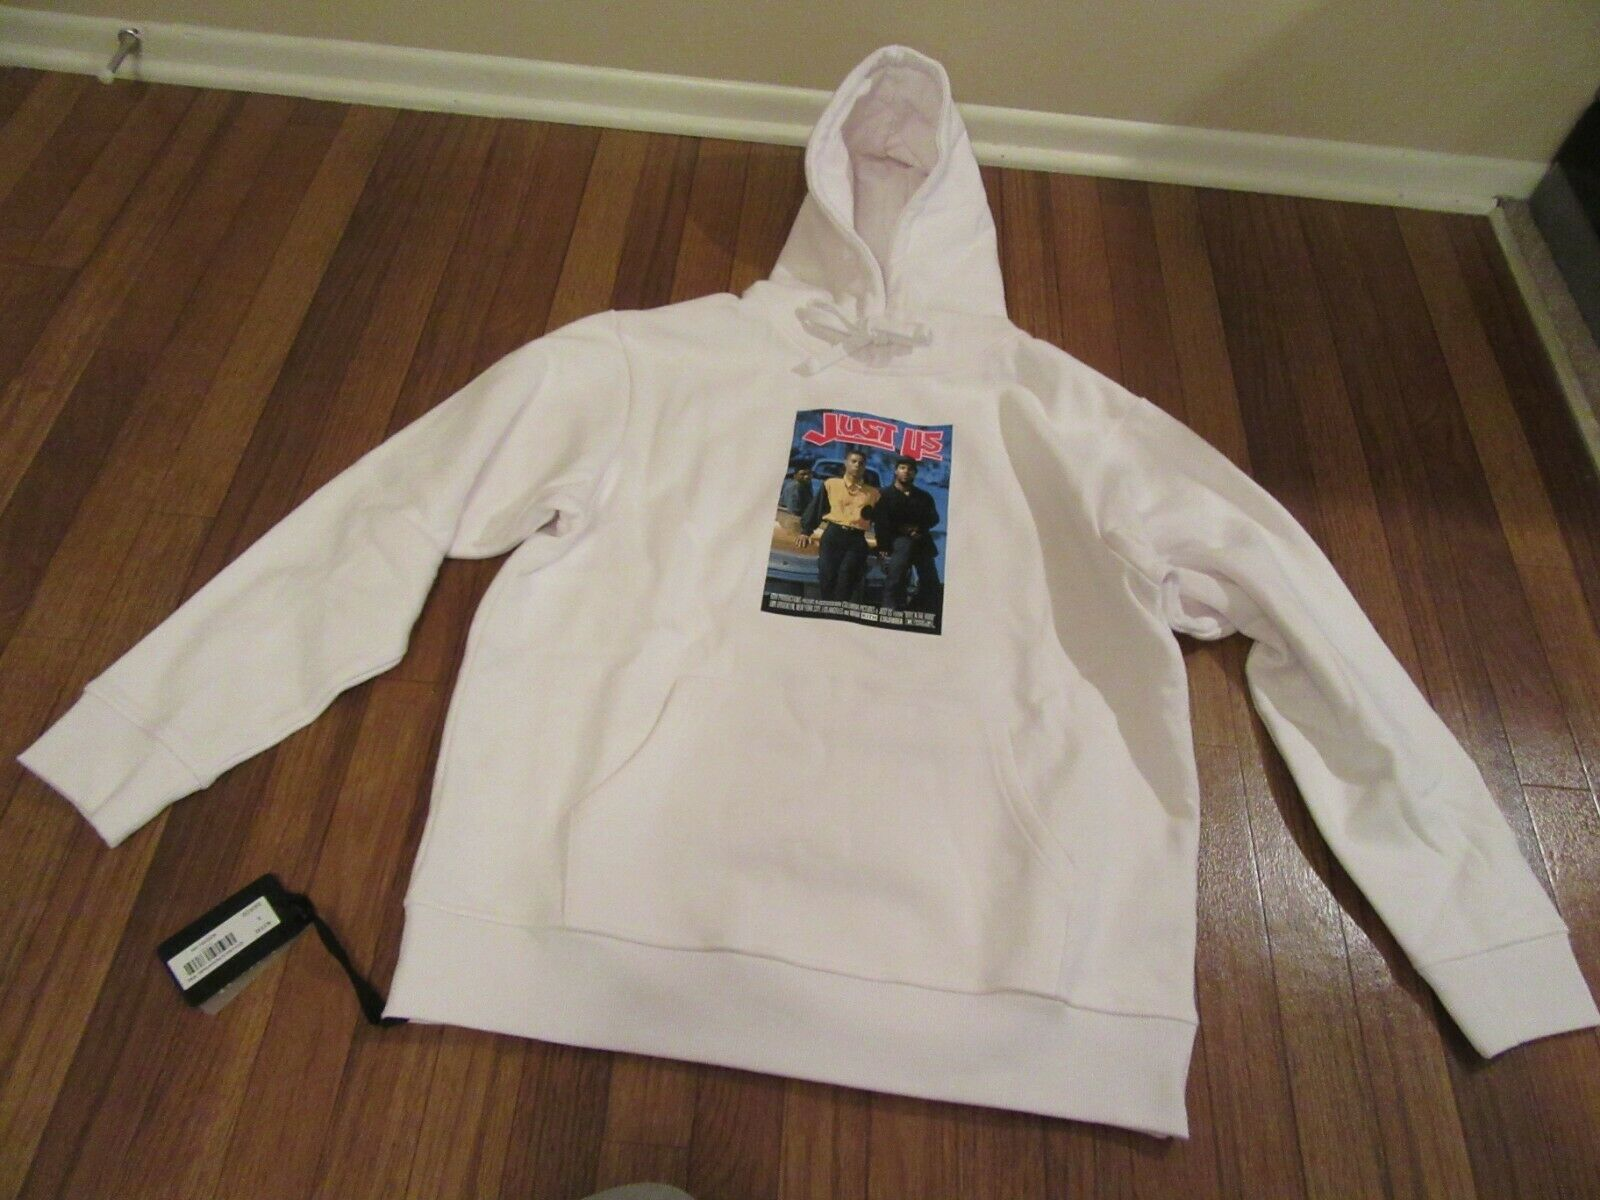 KITH x Boyz In The Hood Hoodie Size Large White Kith Monday Program Just Us DS